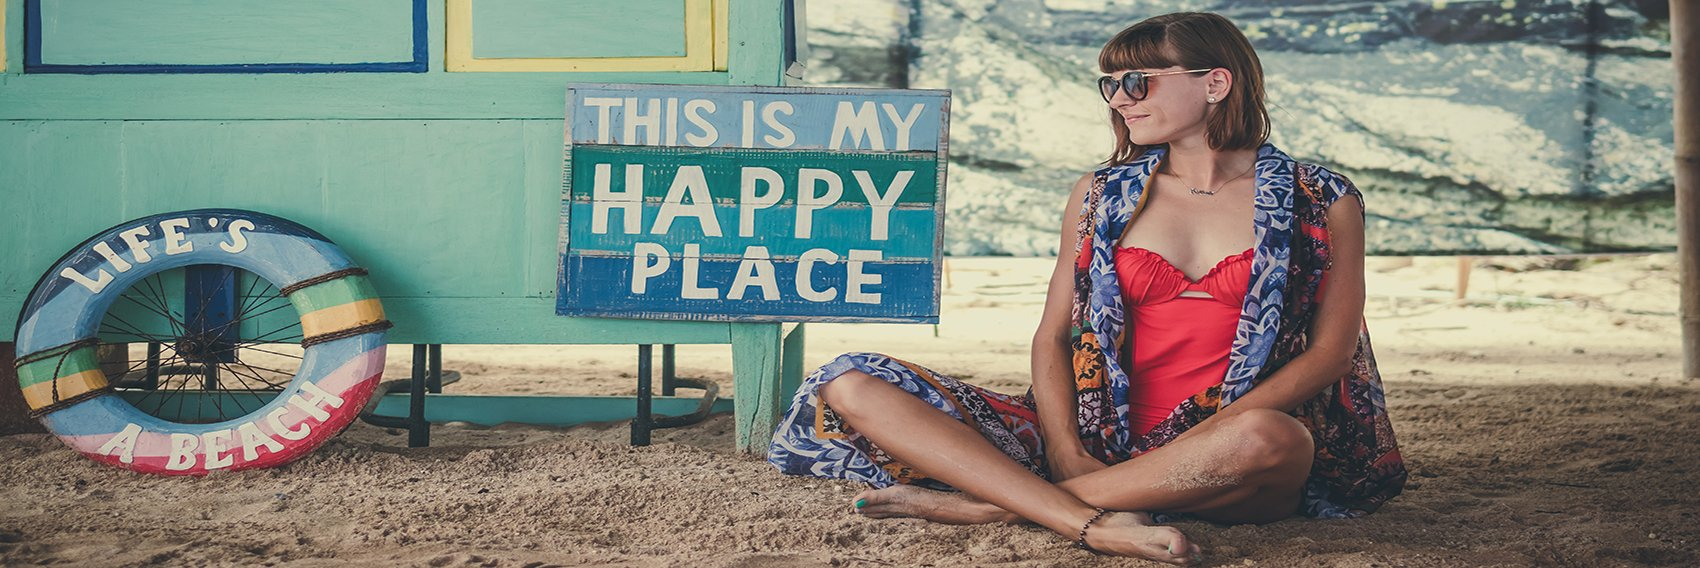 How To Be Happy - Person In Their Happy Place